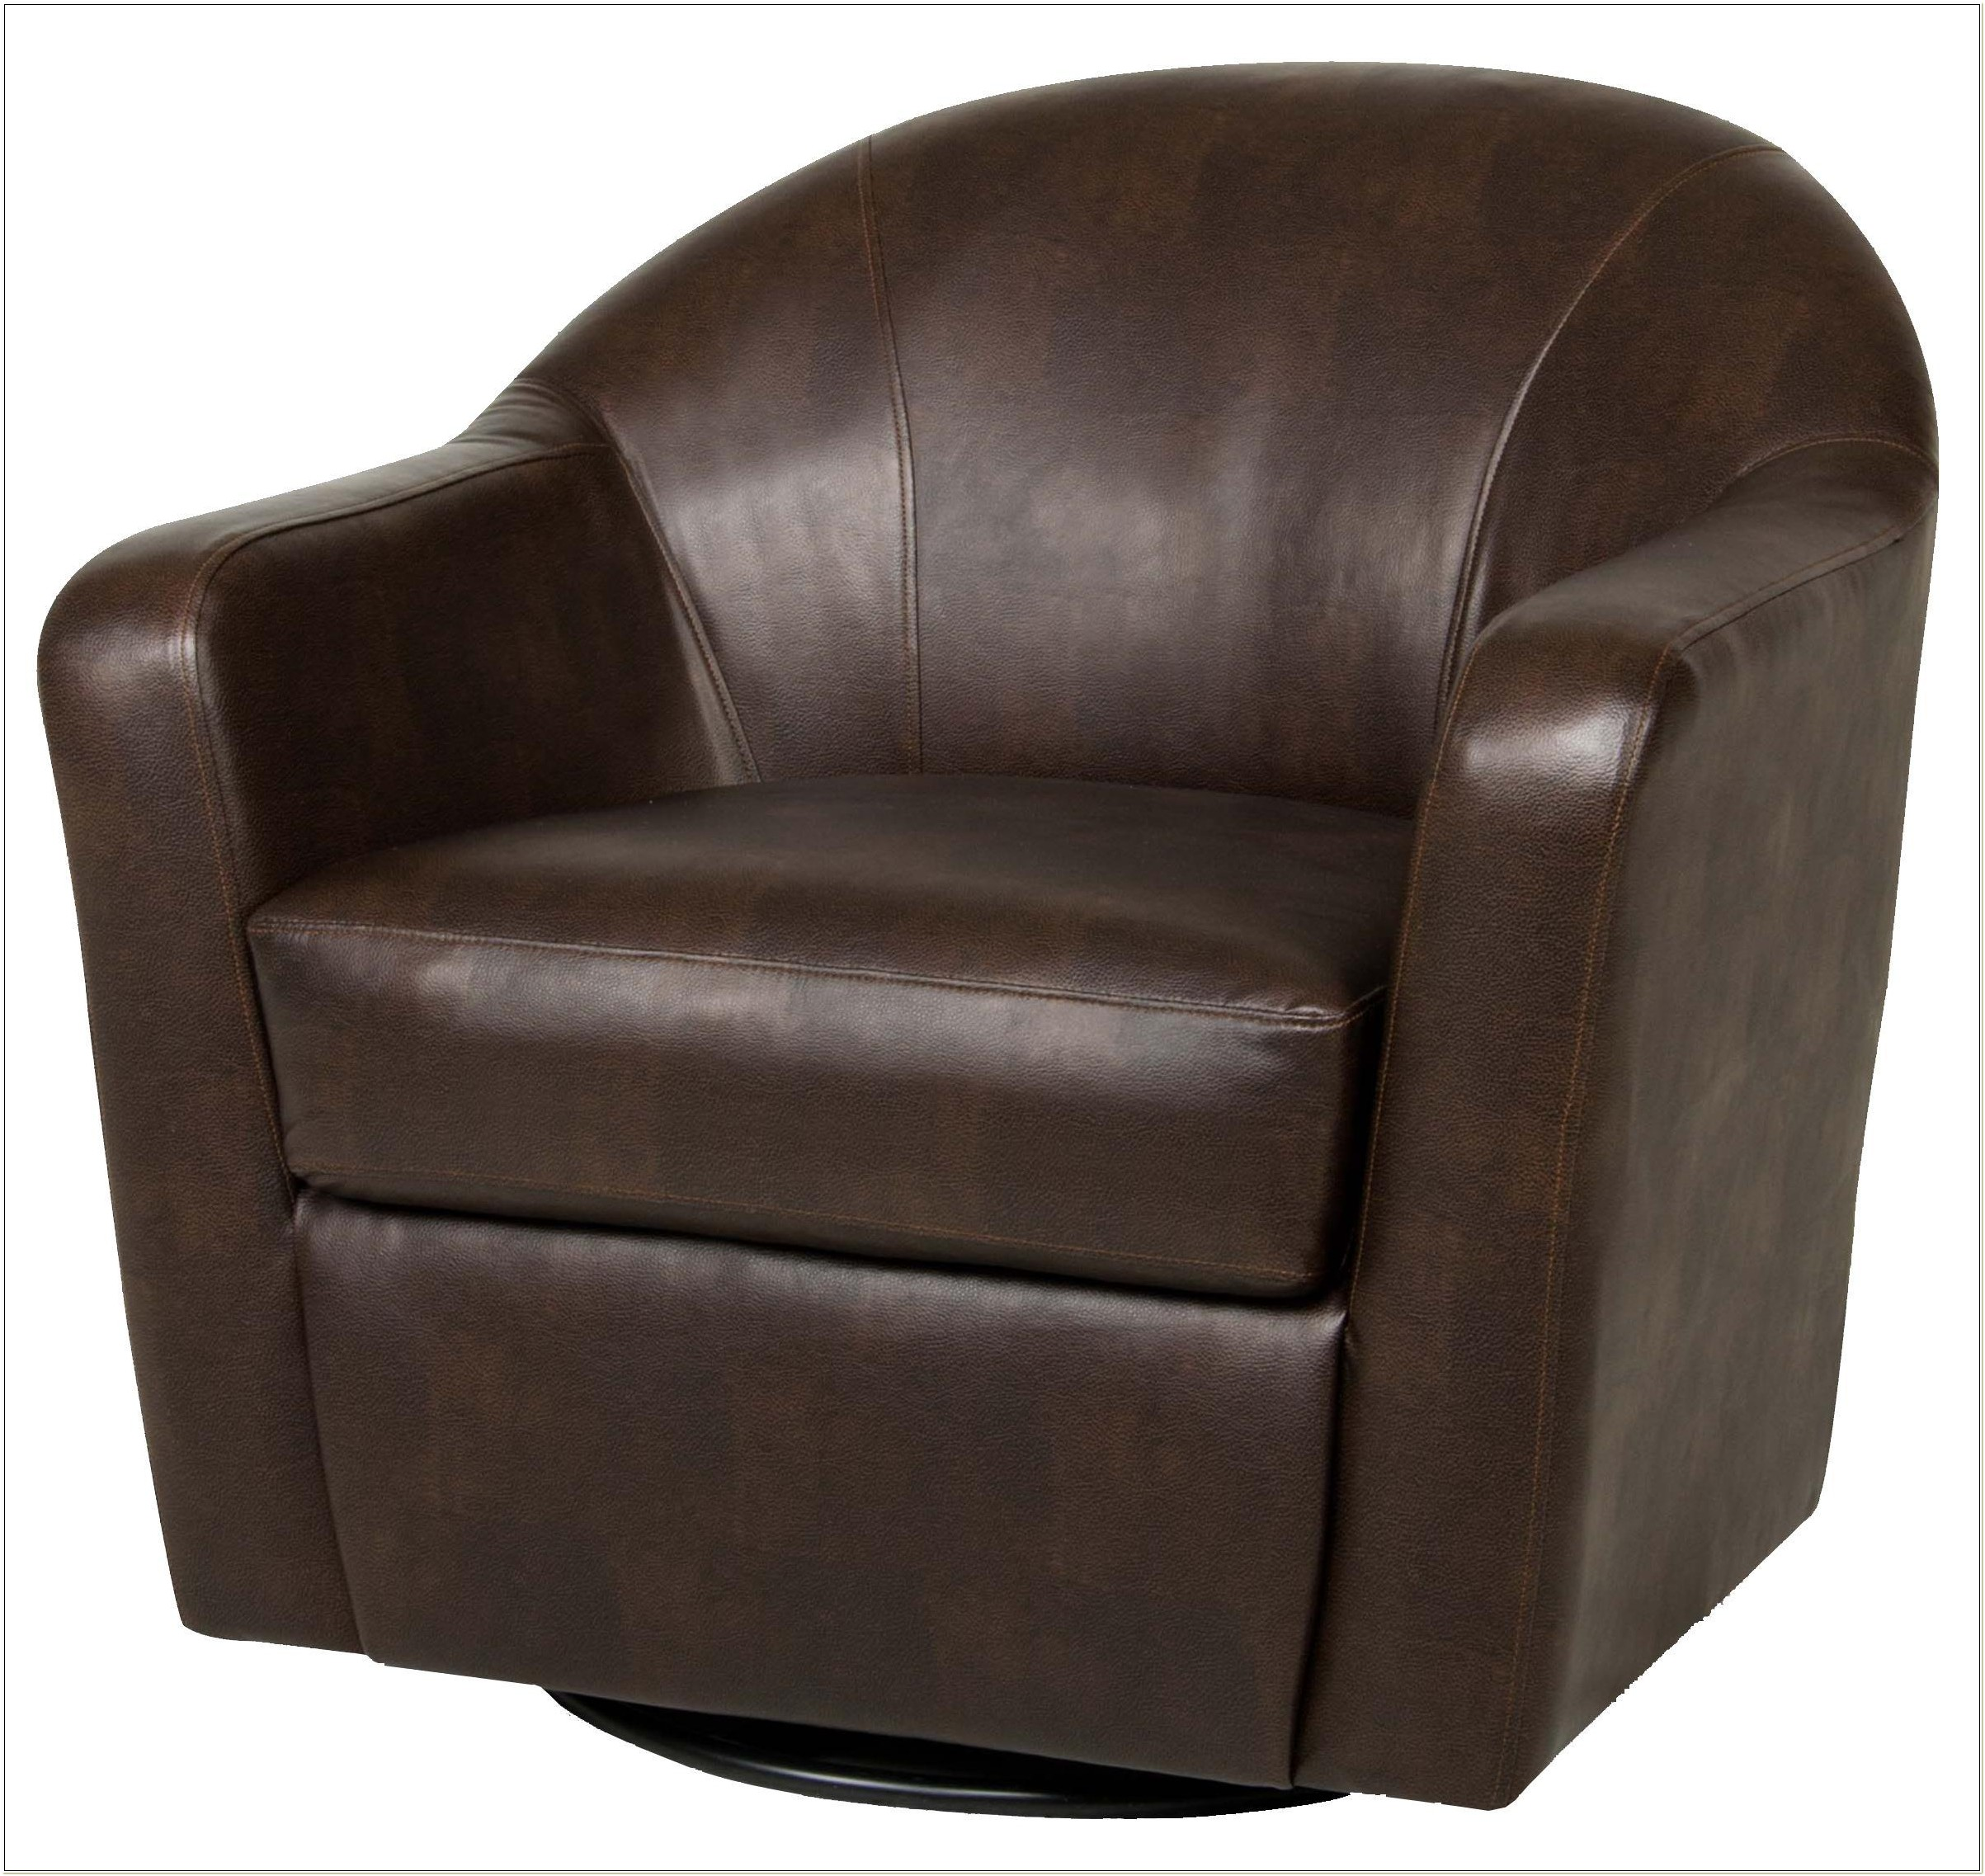 Leather Swivel Glider Tub Chair